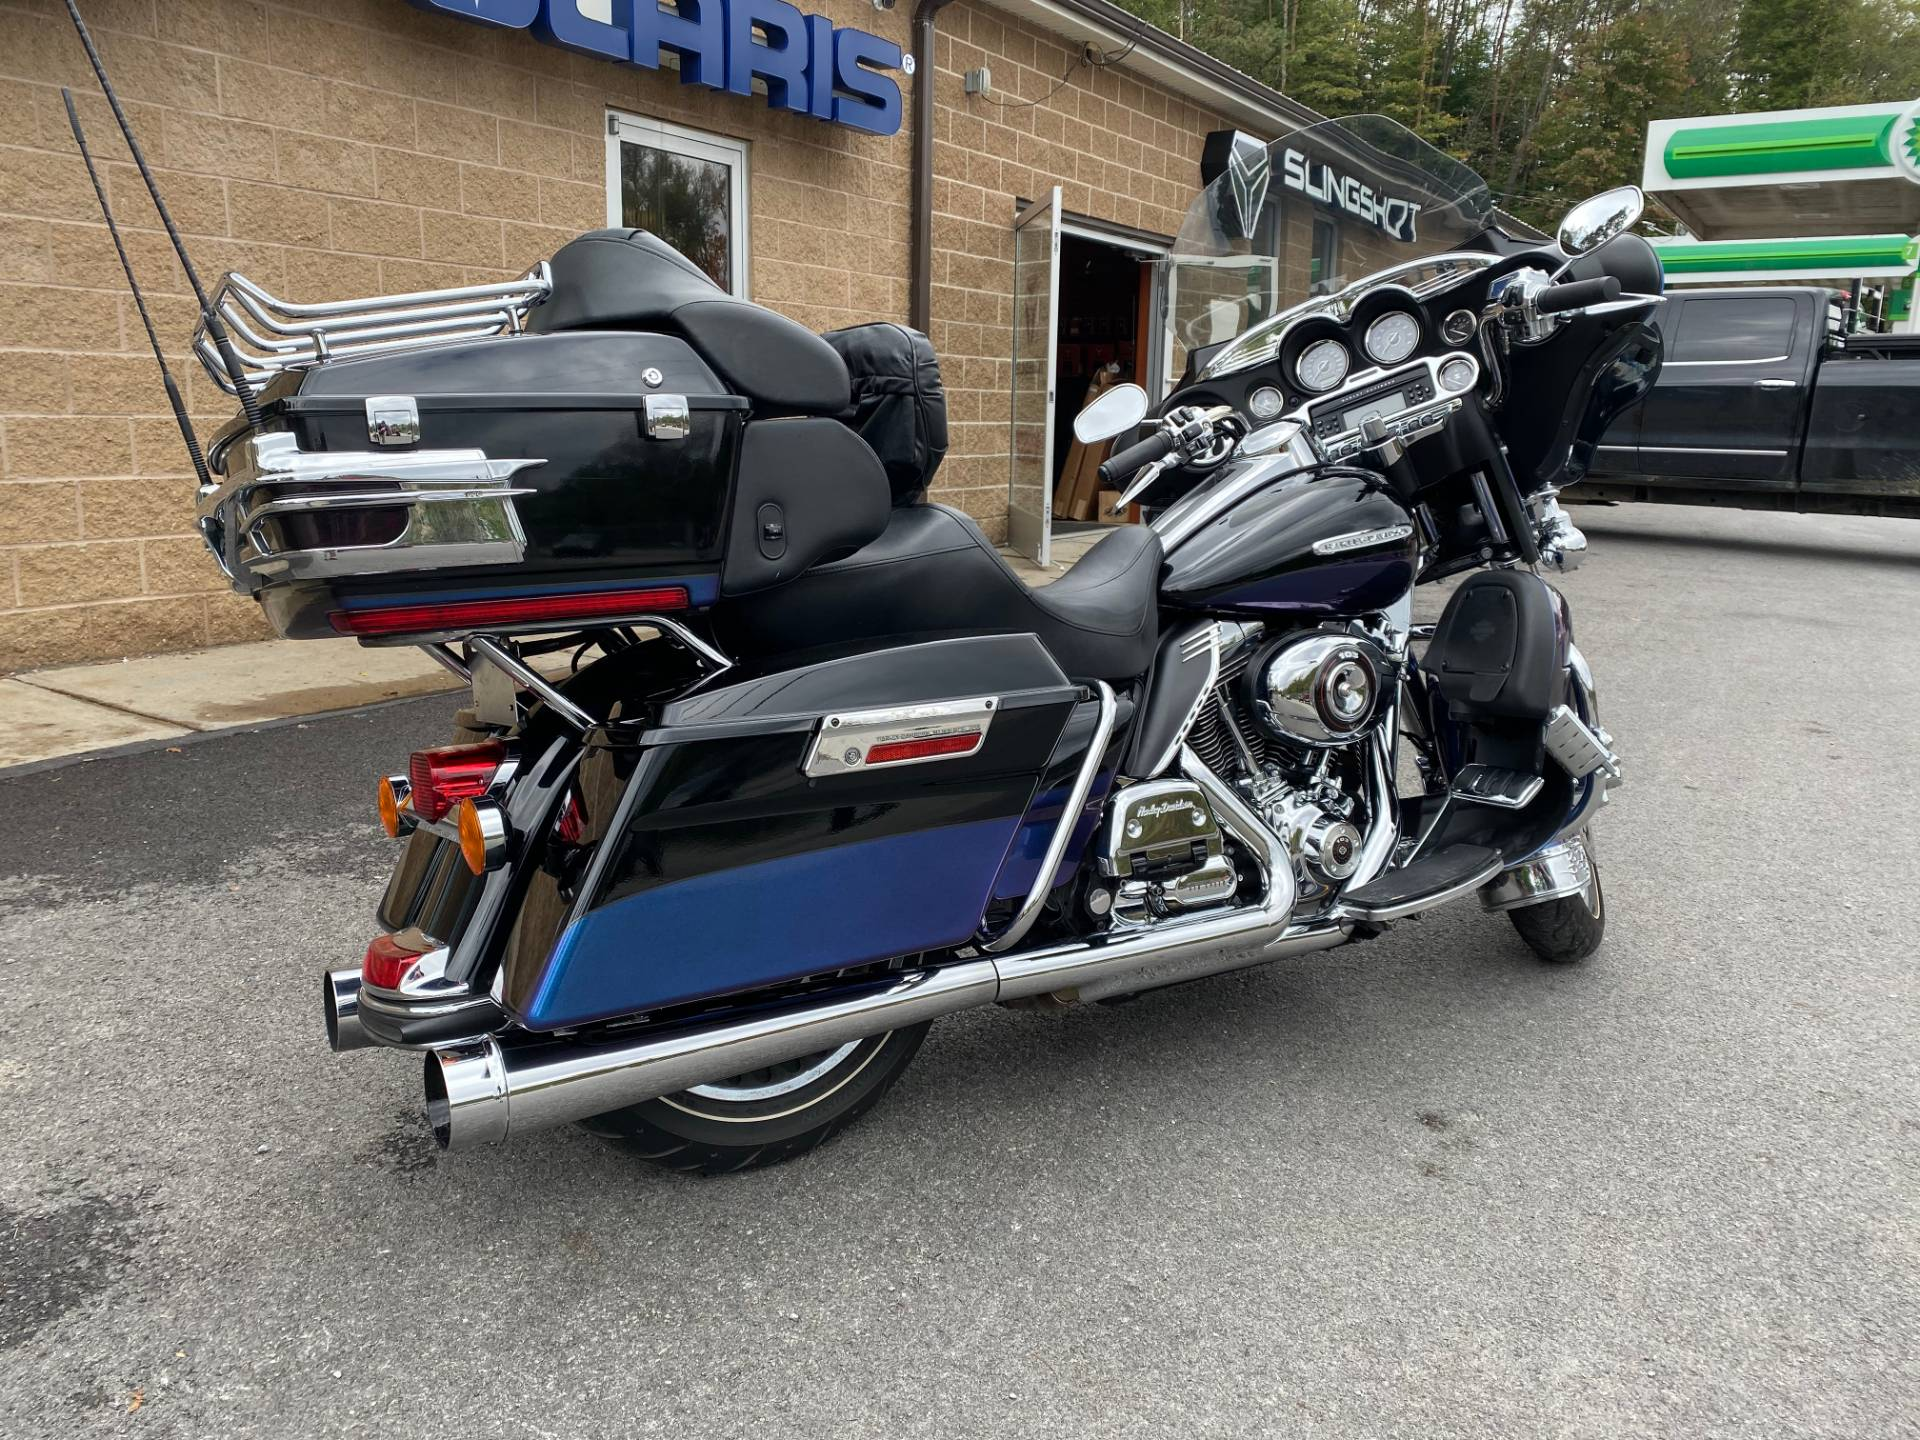 2010 Harley-Davidson Electra Glide® Ultra Limited in Chicora, Pennsylvania - Photo 3